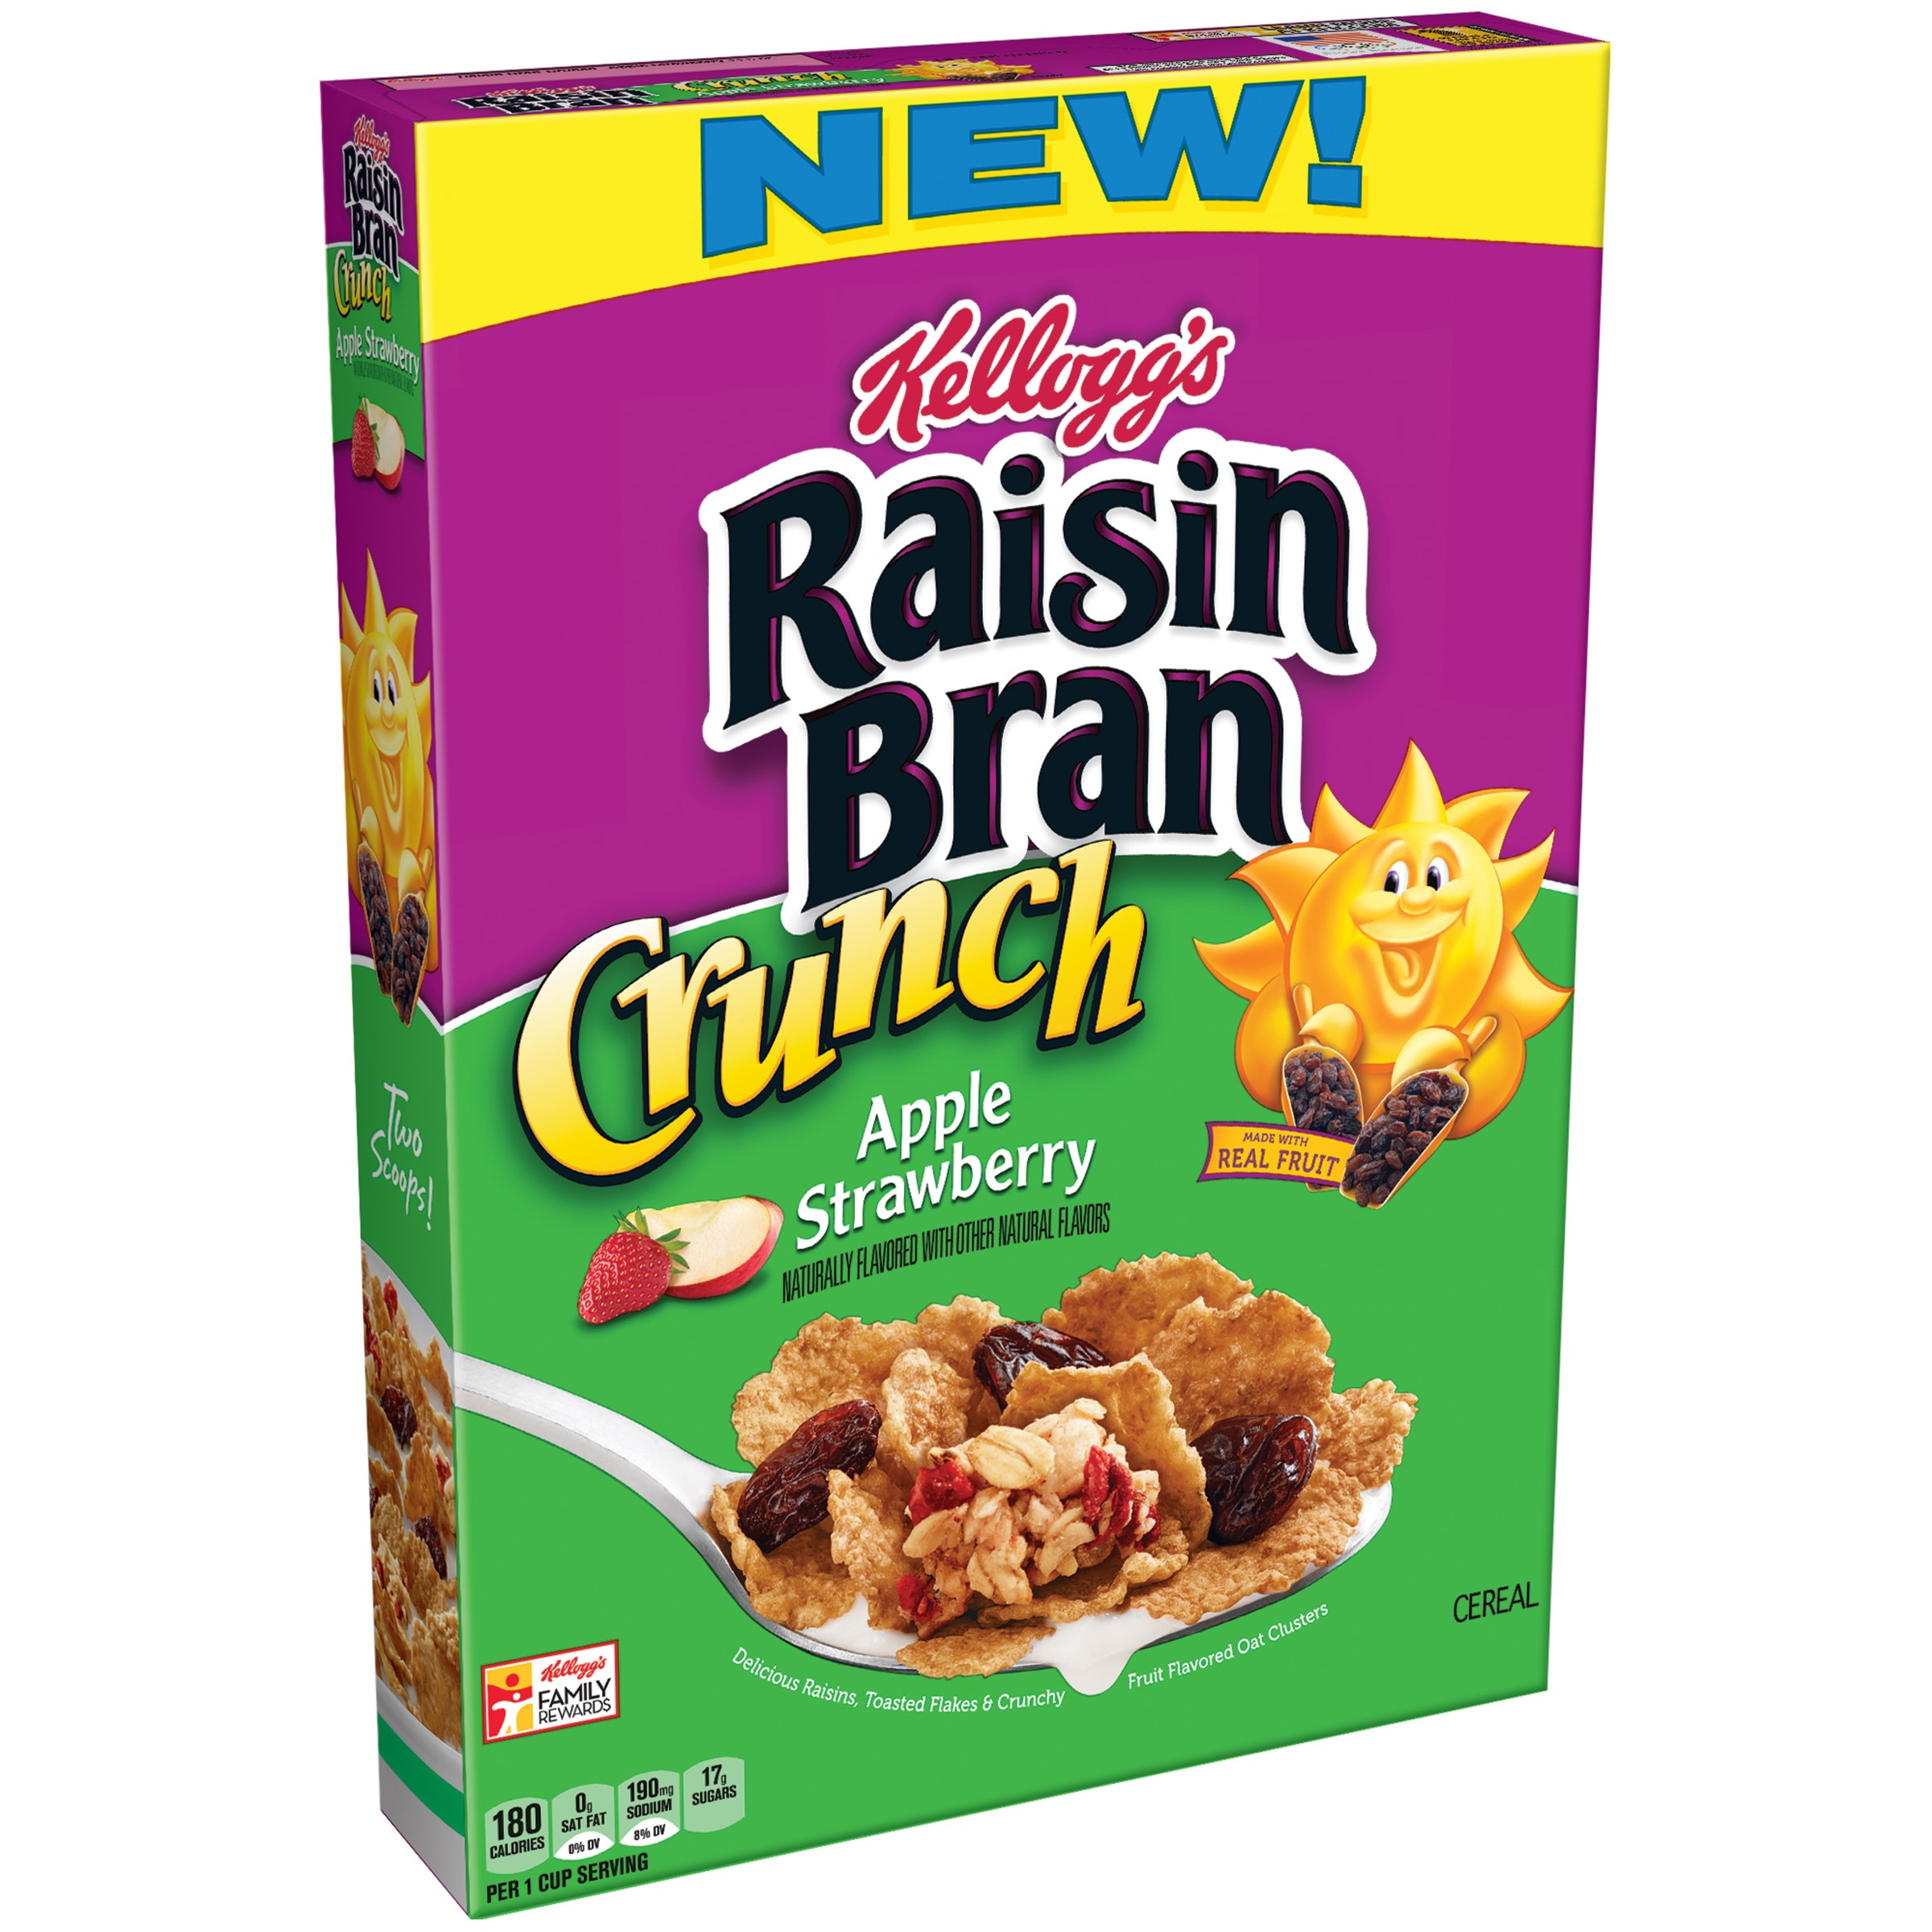 Kellogg's Raisin Bran Crunch, Apple Strawberry, 14.5 Oz